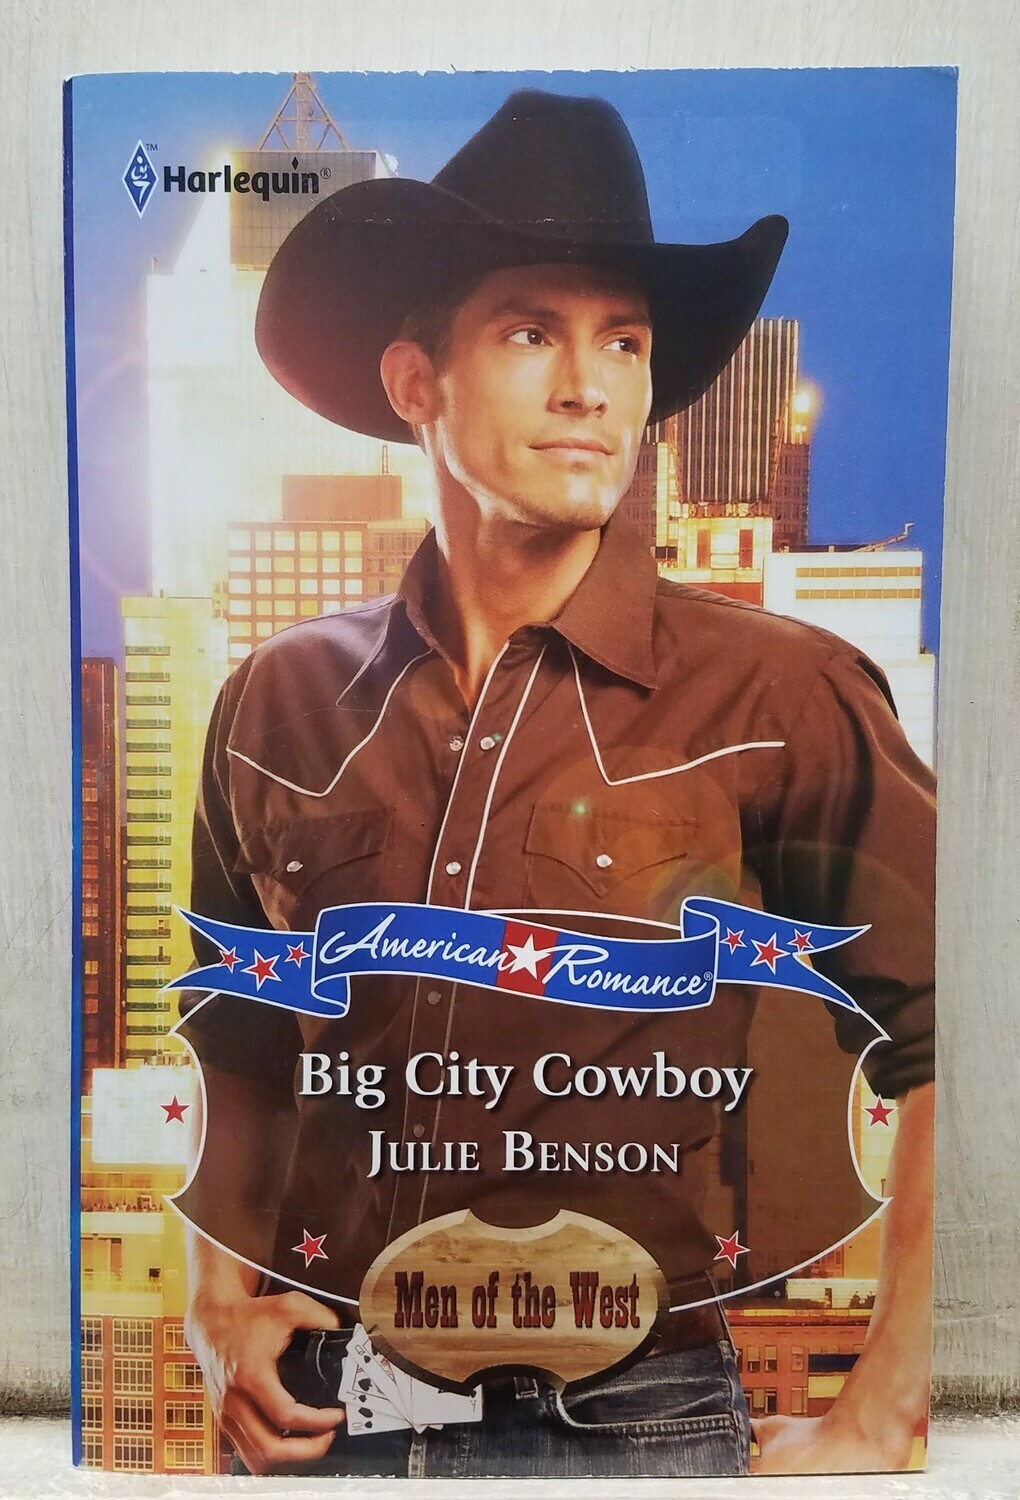 Big City Cowboy by Julie Benson